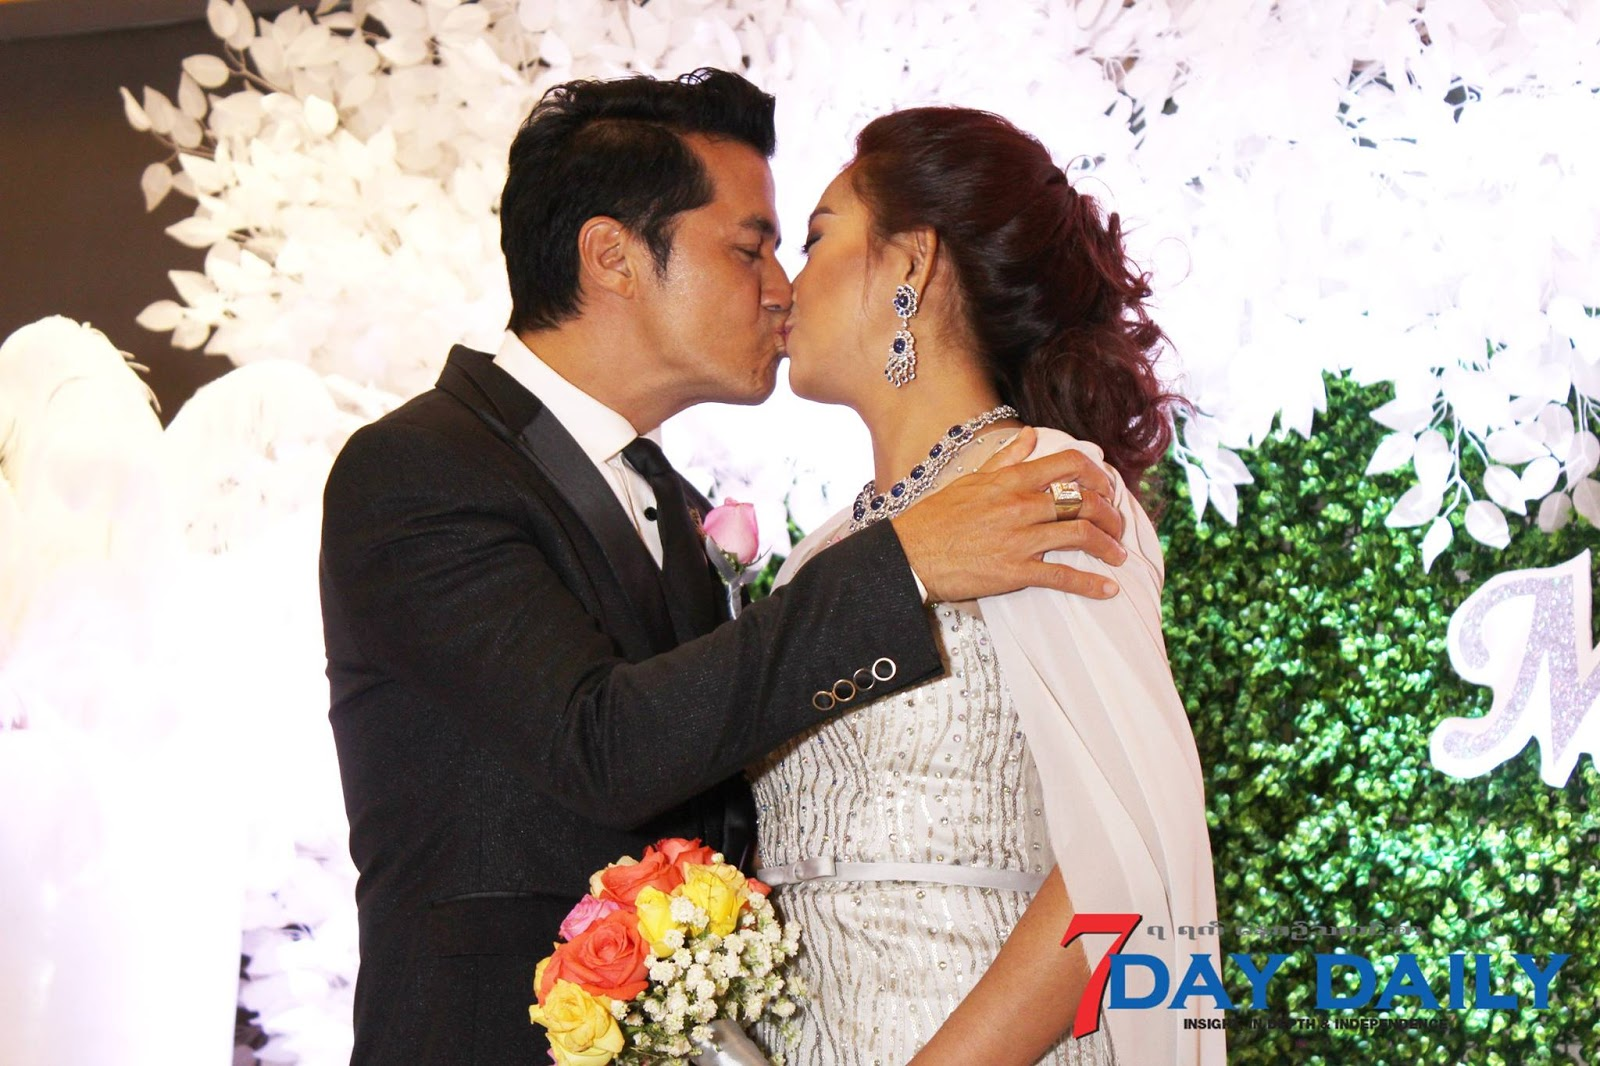 Min Oo and Khine Wai Thu Wedding Reception Pictures At Yangon Novotel Max Hotel